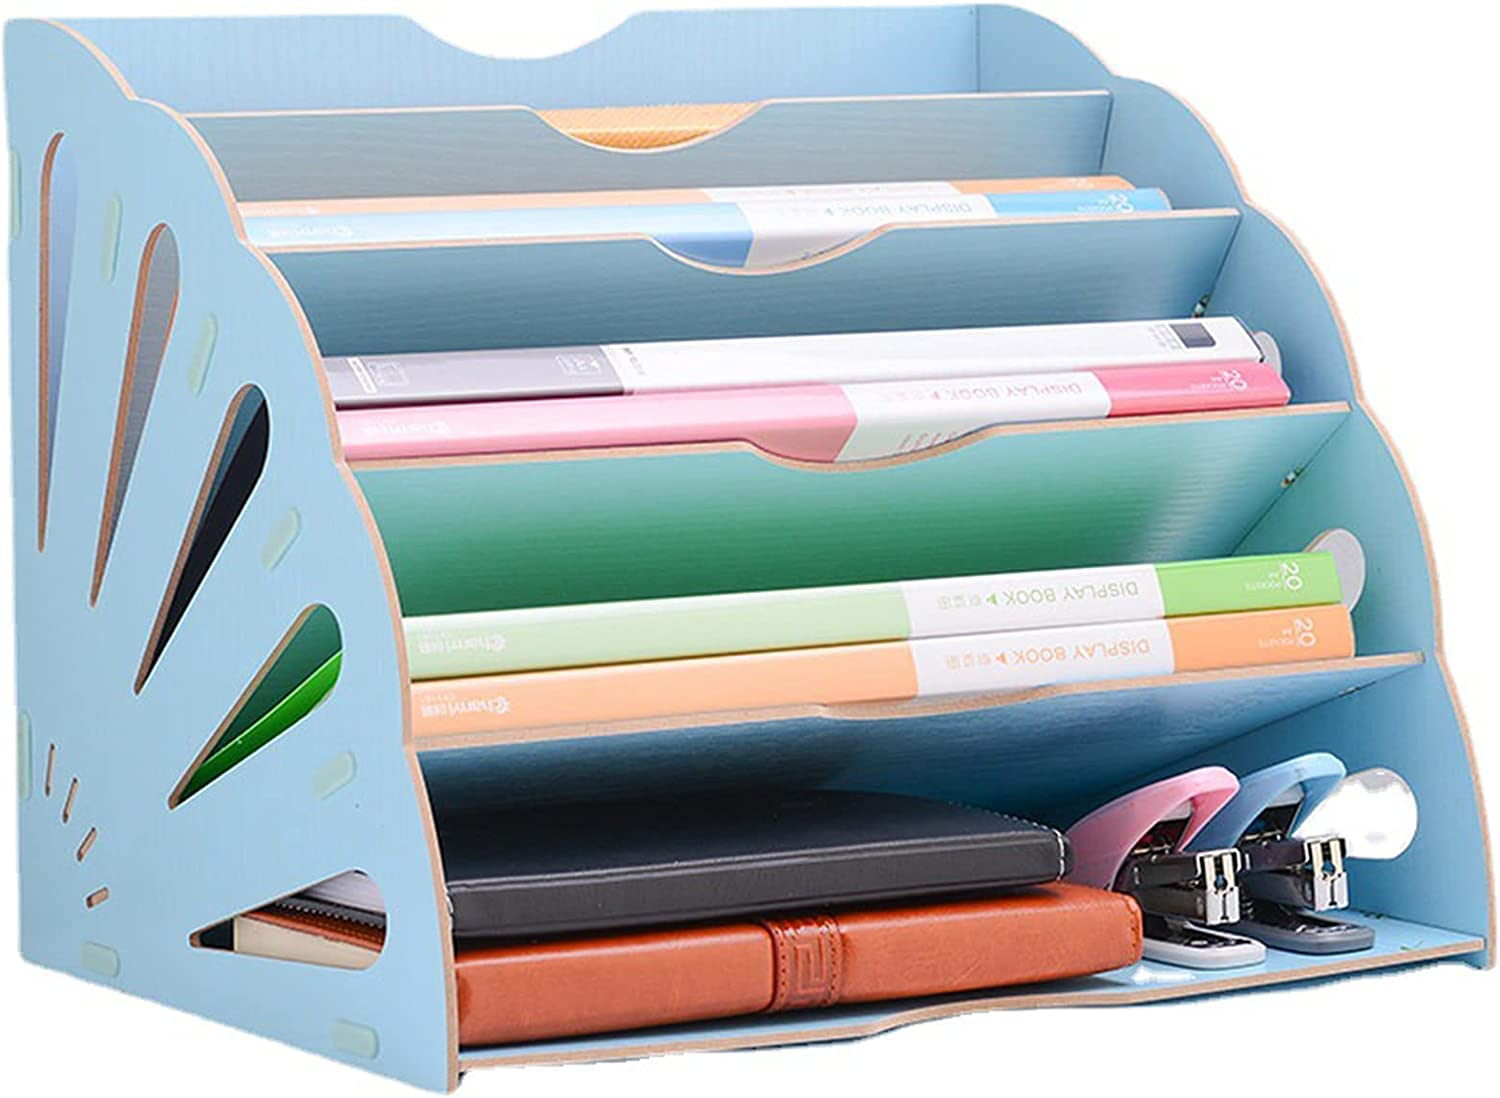 LJSF Wooden Filing Trays Wood File Stationery Office Cheap SALE Start Organ Desk Super sale period limited